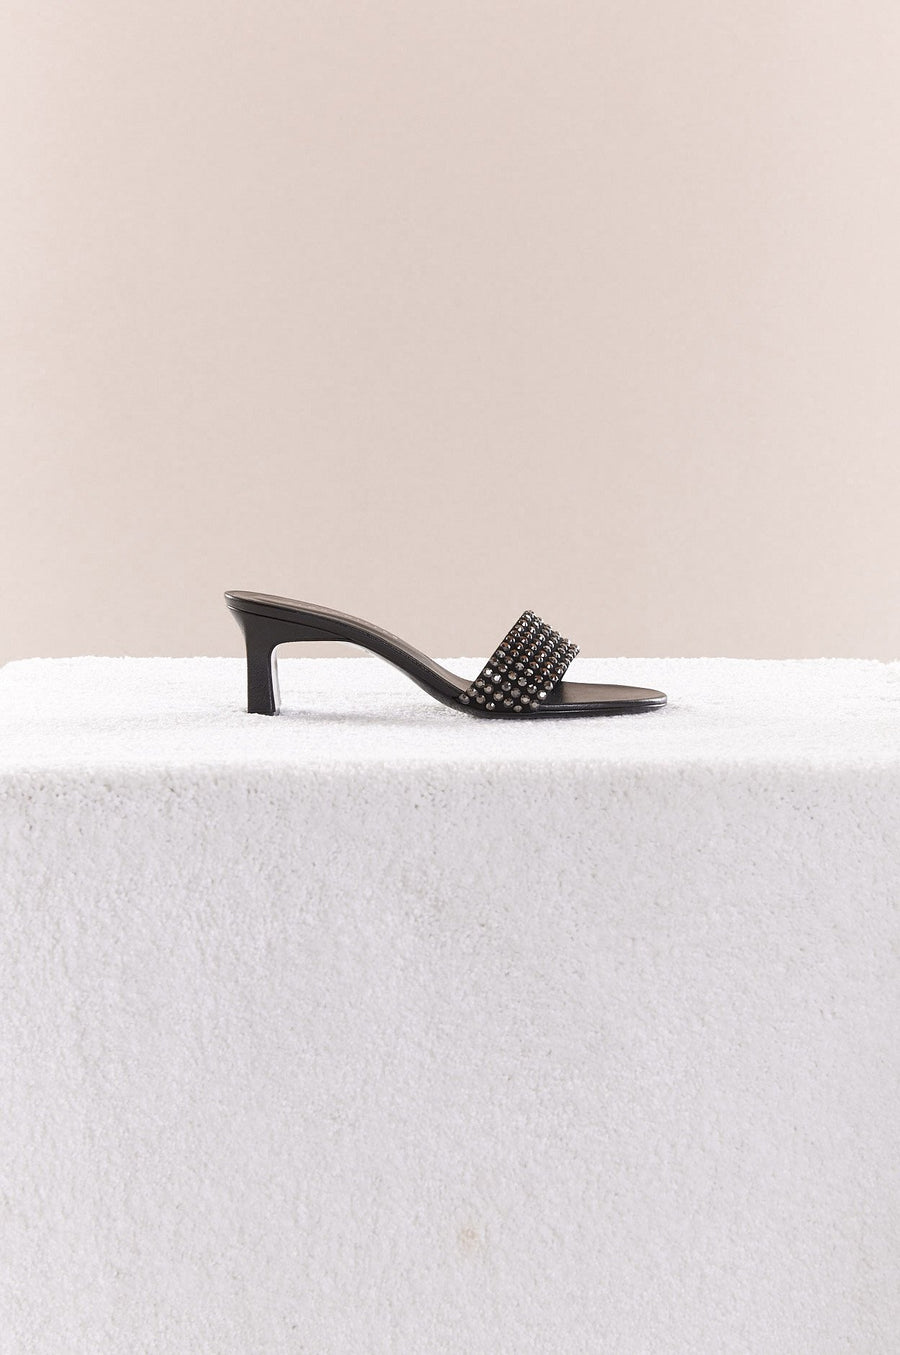 Hush Heel in Black + Black Crystal